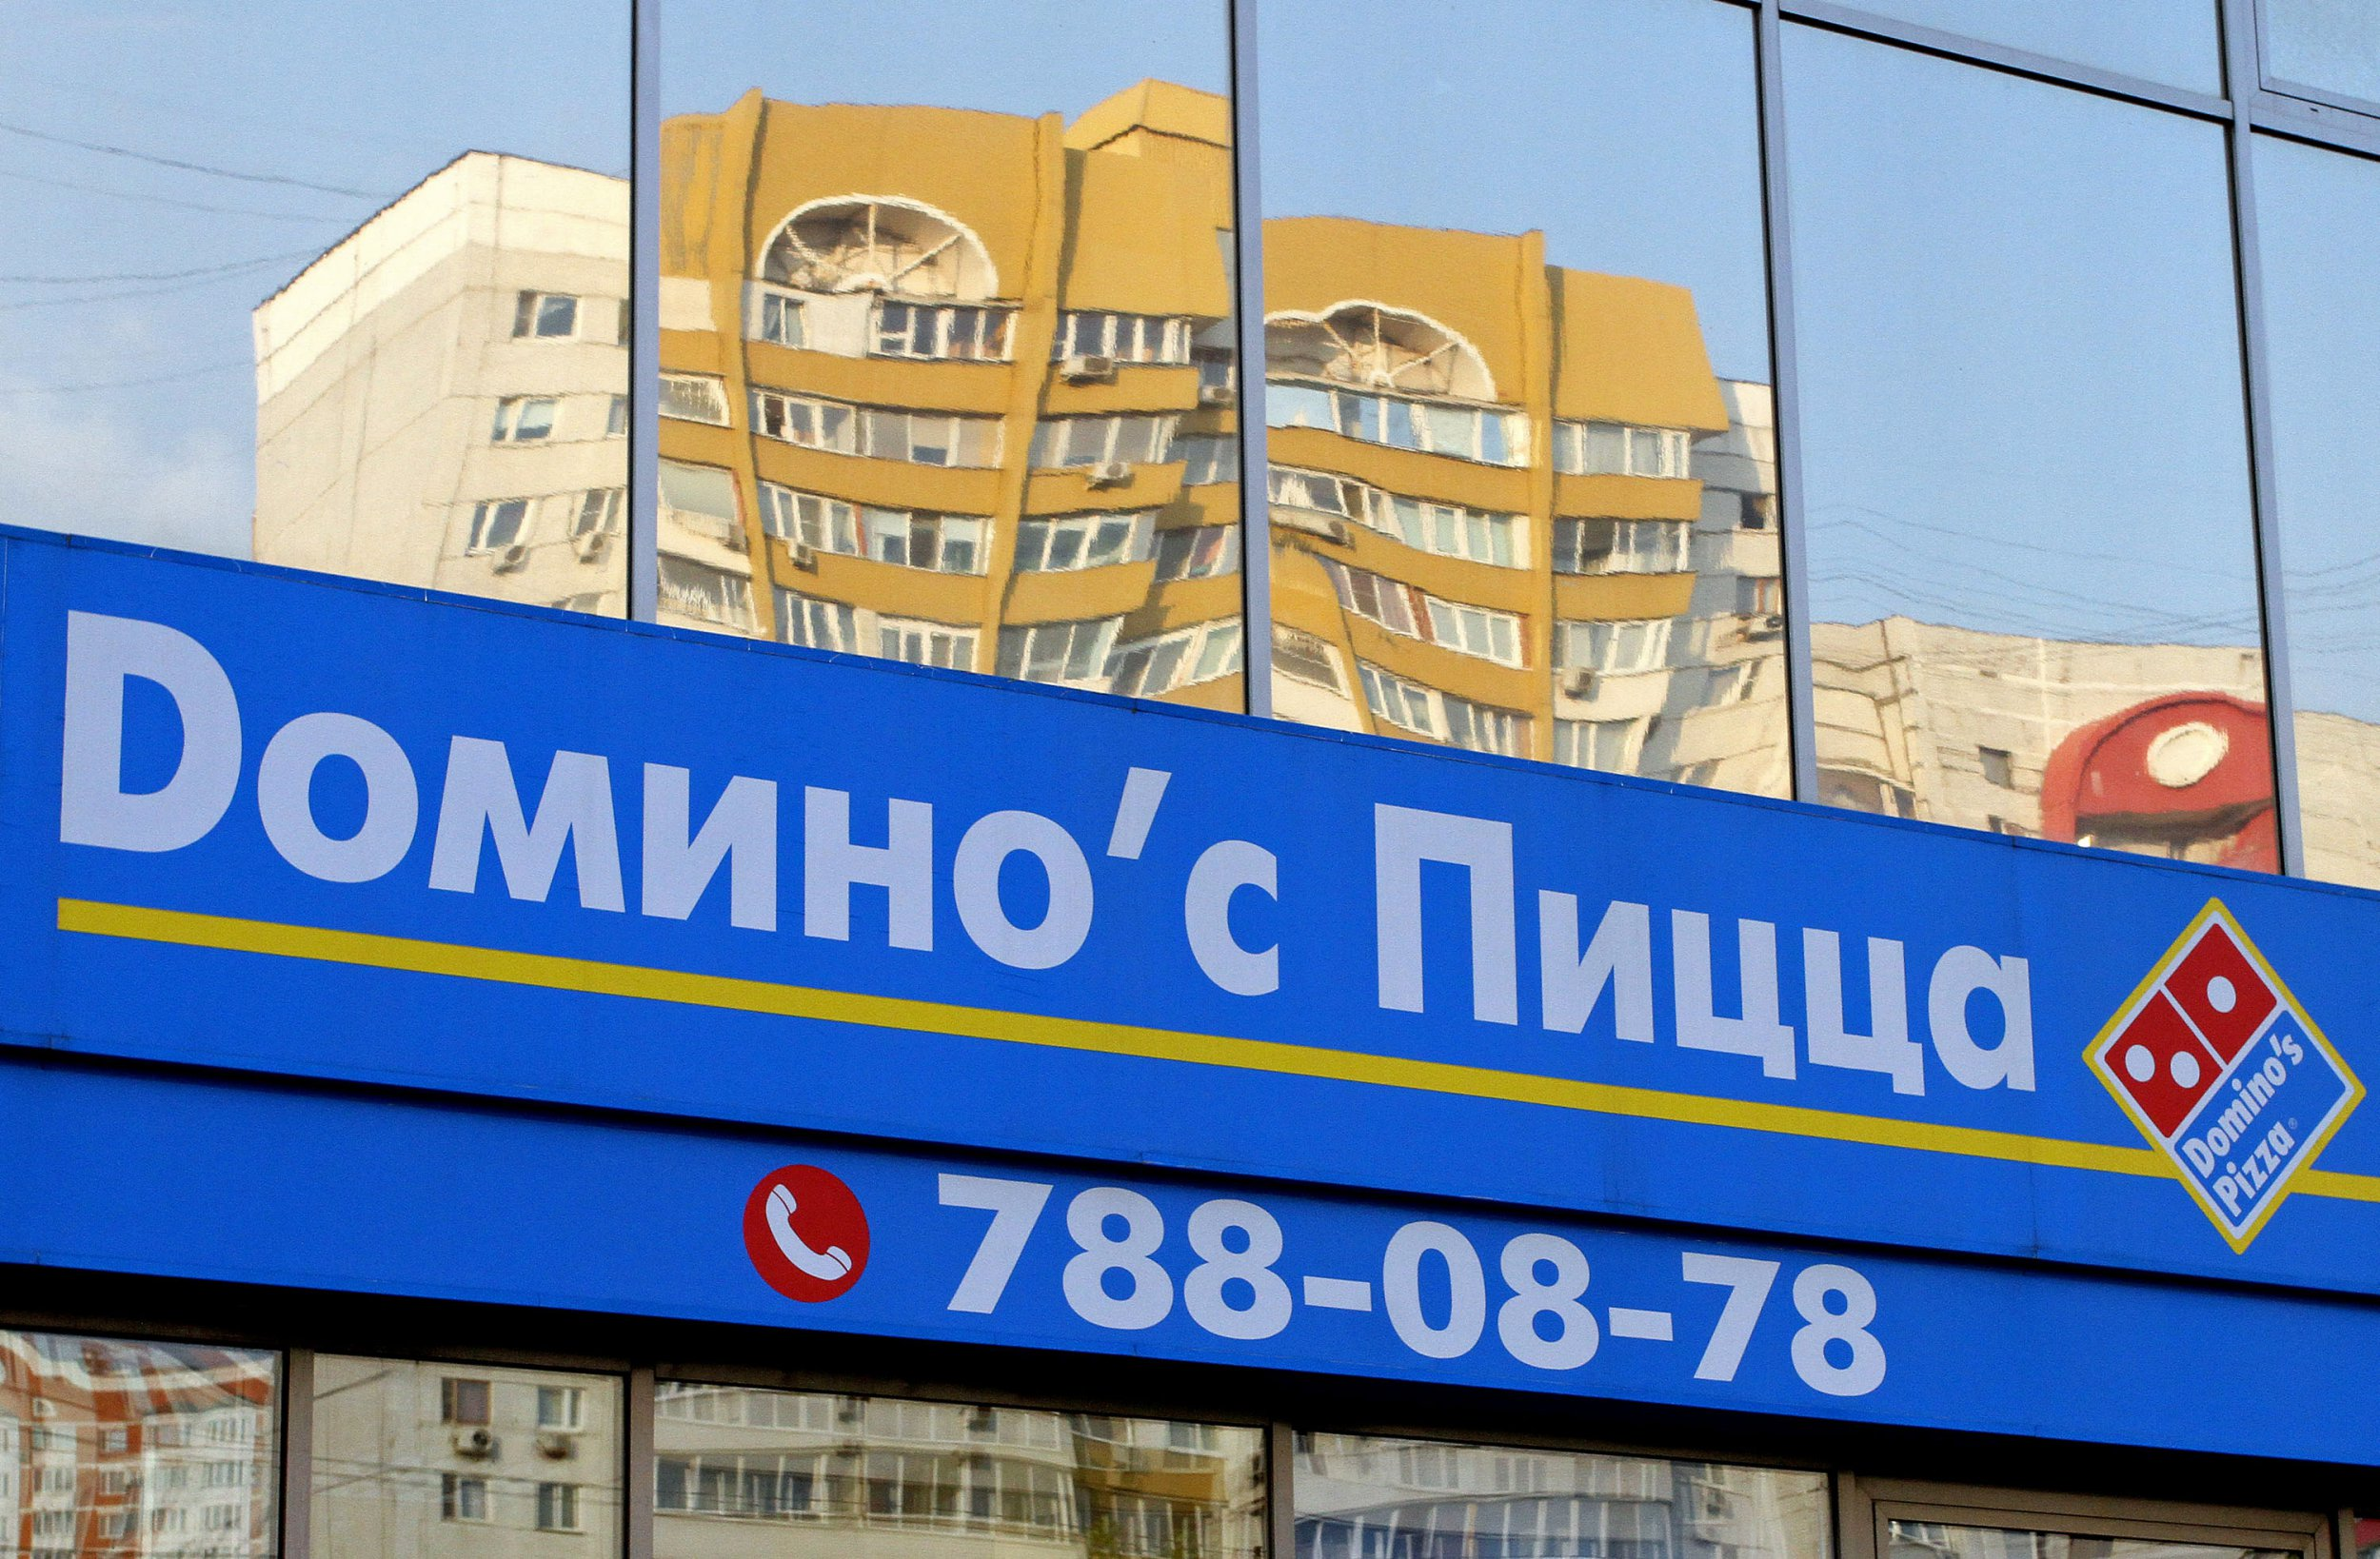 A Russian logo sits on display outside a Domino's Pizza Inc. fast food store in Moscow, Russia, on Tuesday, Aug. 16, 2011. Domino's, which has 4,900 stores in the U.S. and 4,400 international locations, will open as many as 300 stores a year over the long-term, with most being in overseas markets. Photographer: Andrey Rudakov/Bloomberg via Getty Images